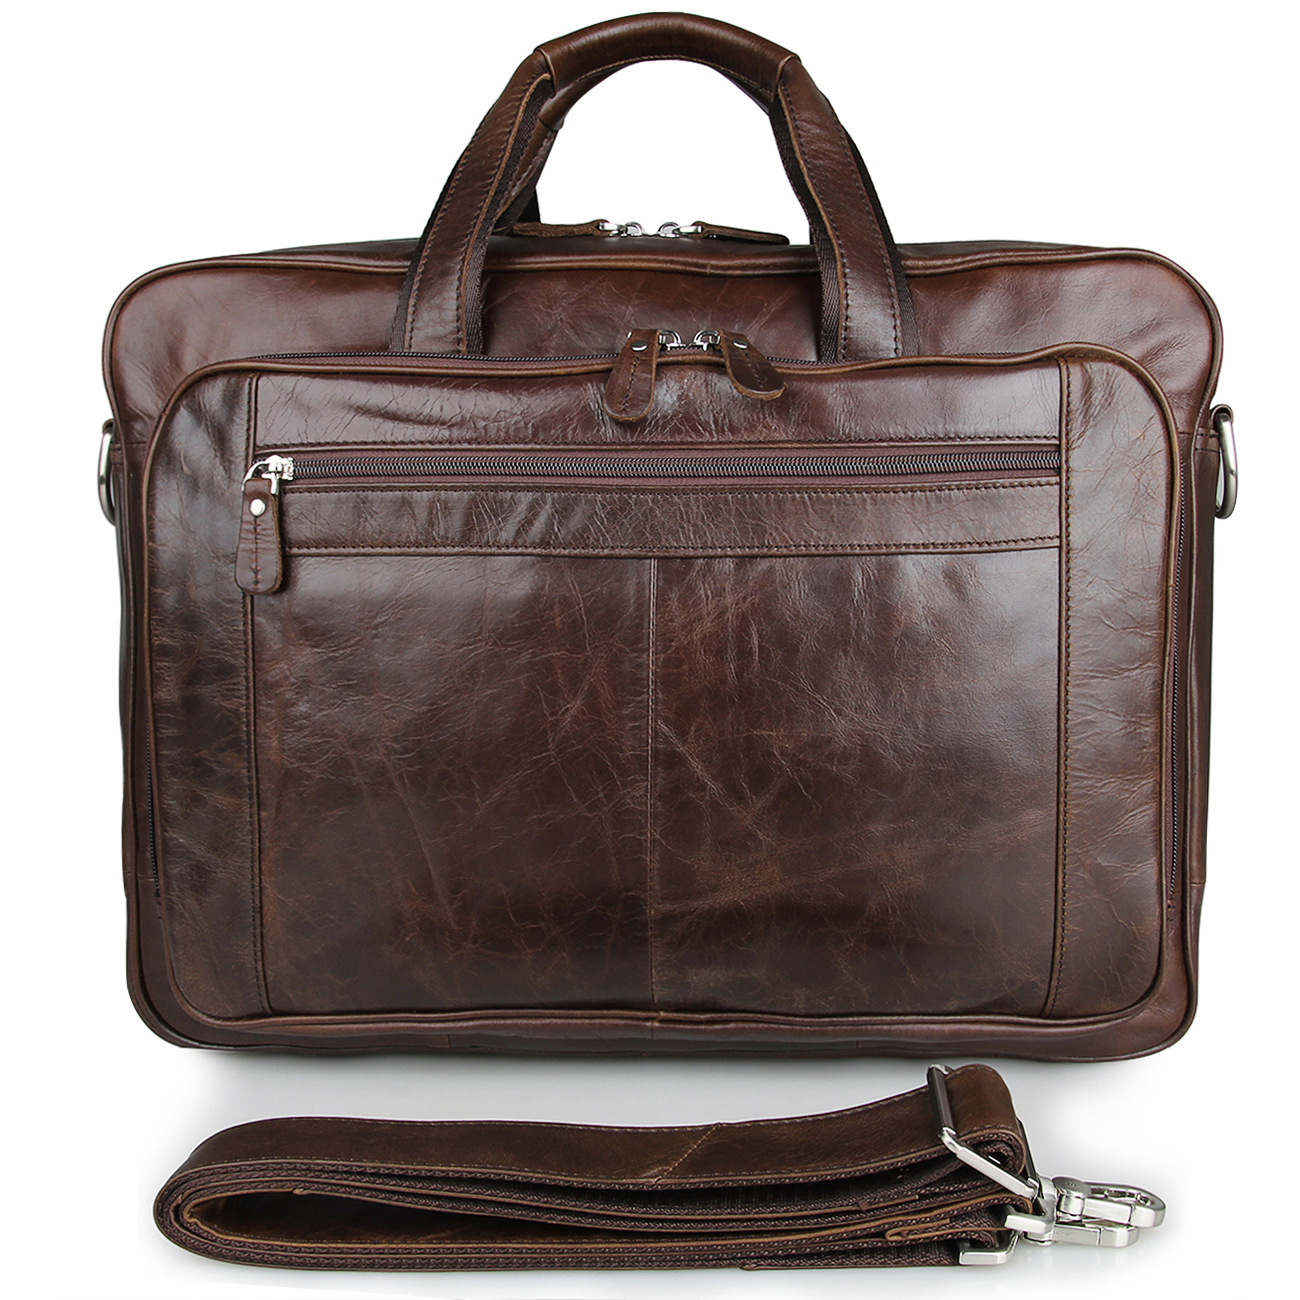 Europe American Retro Leather Men s Bag Oil Wax Leather Business Bag Briefcase 730 40 Large